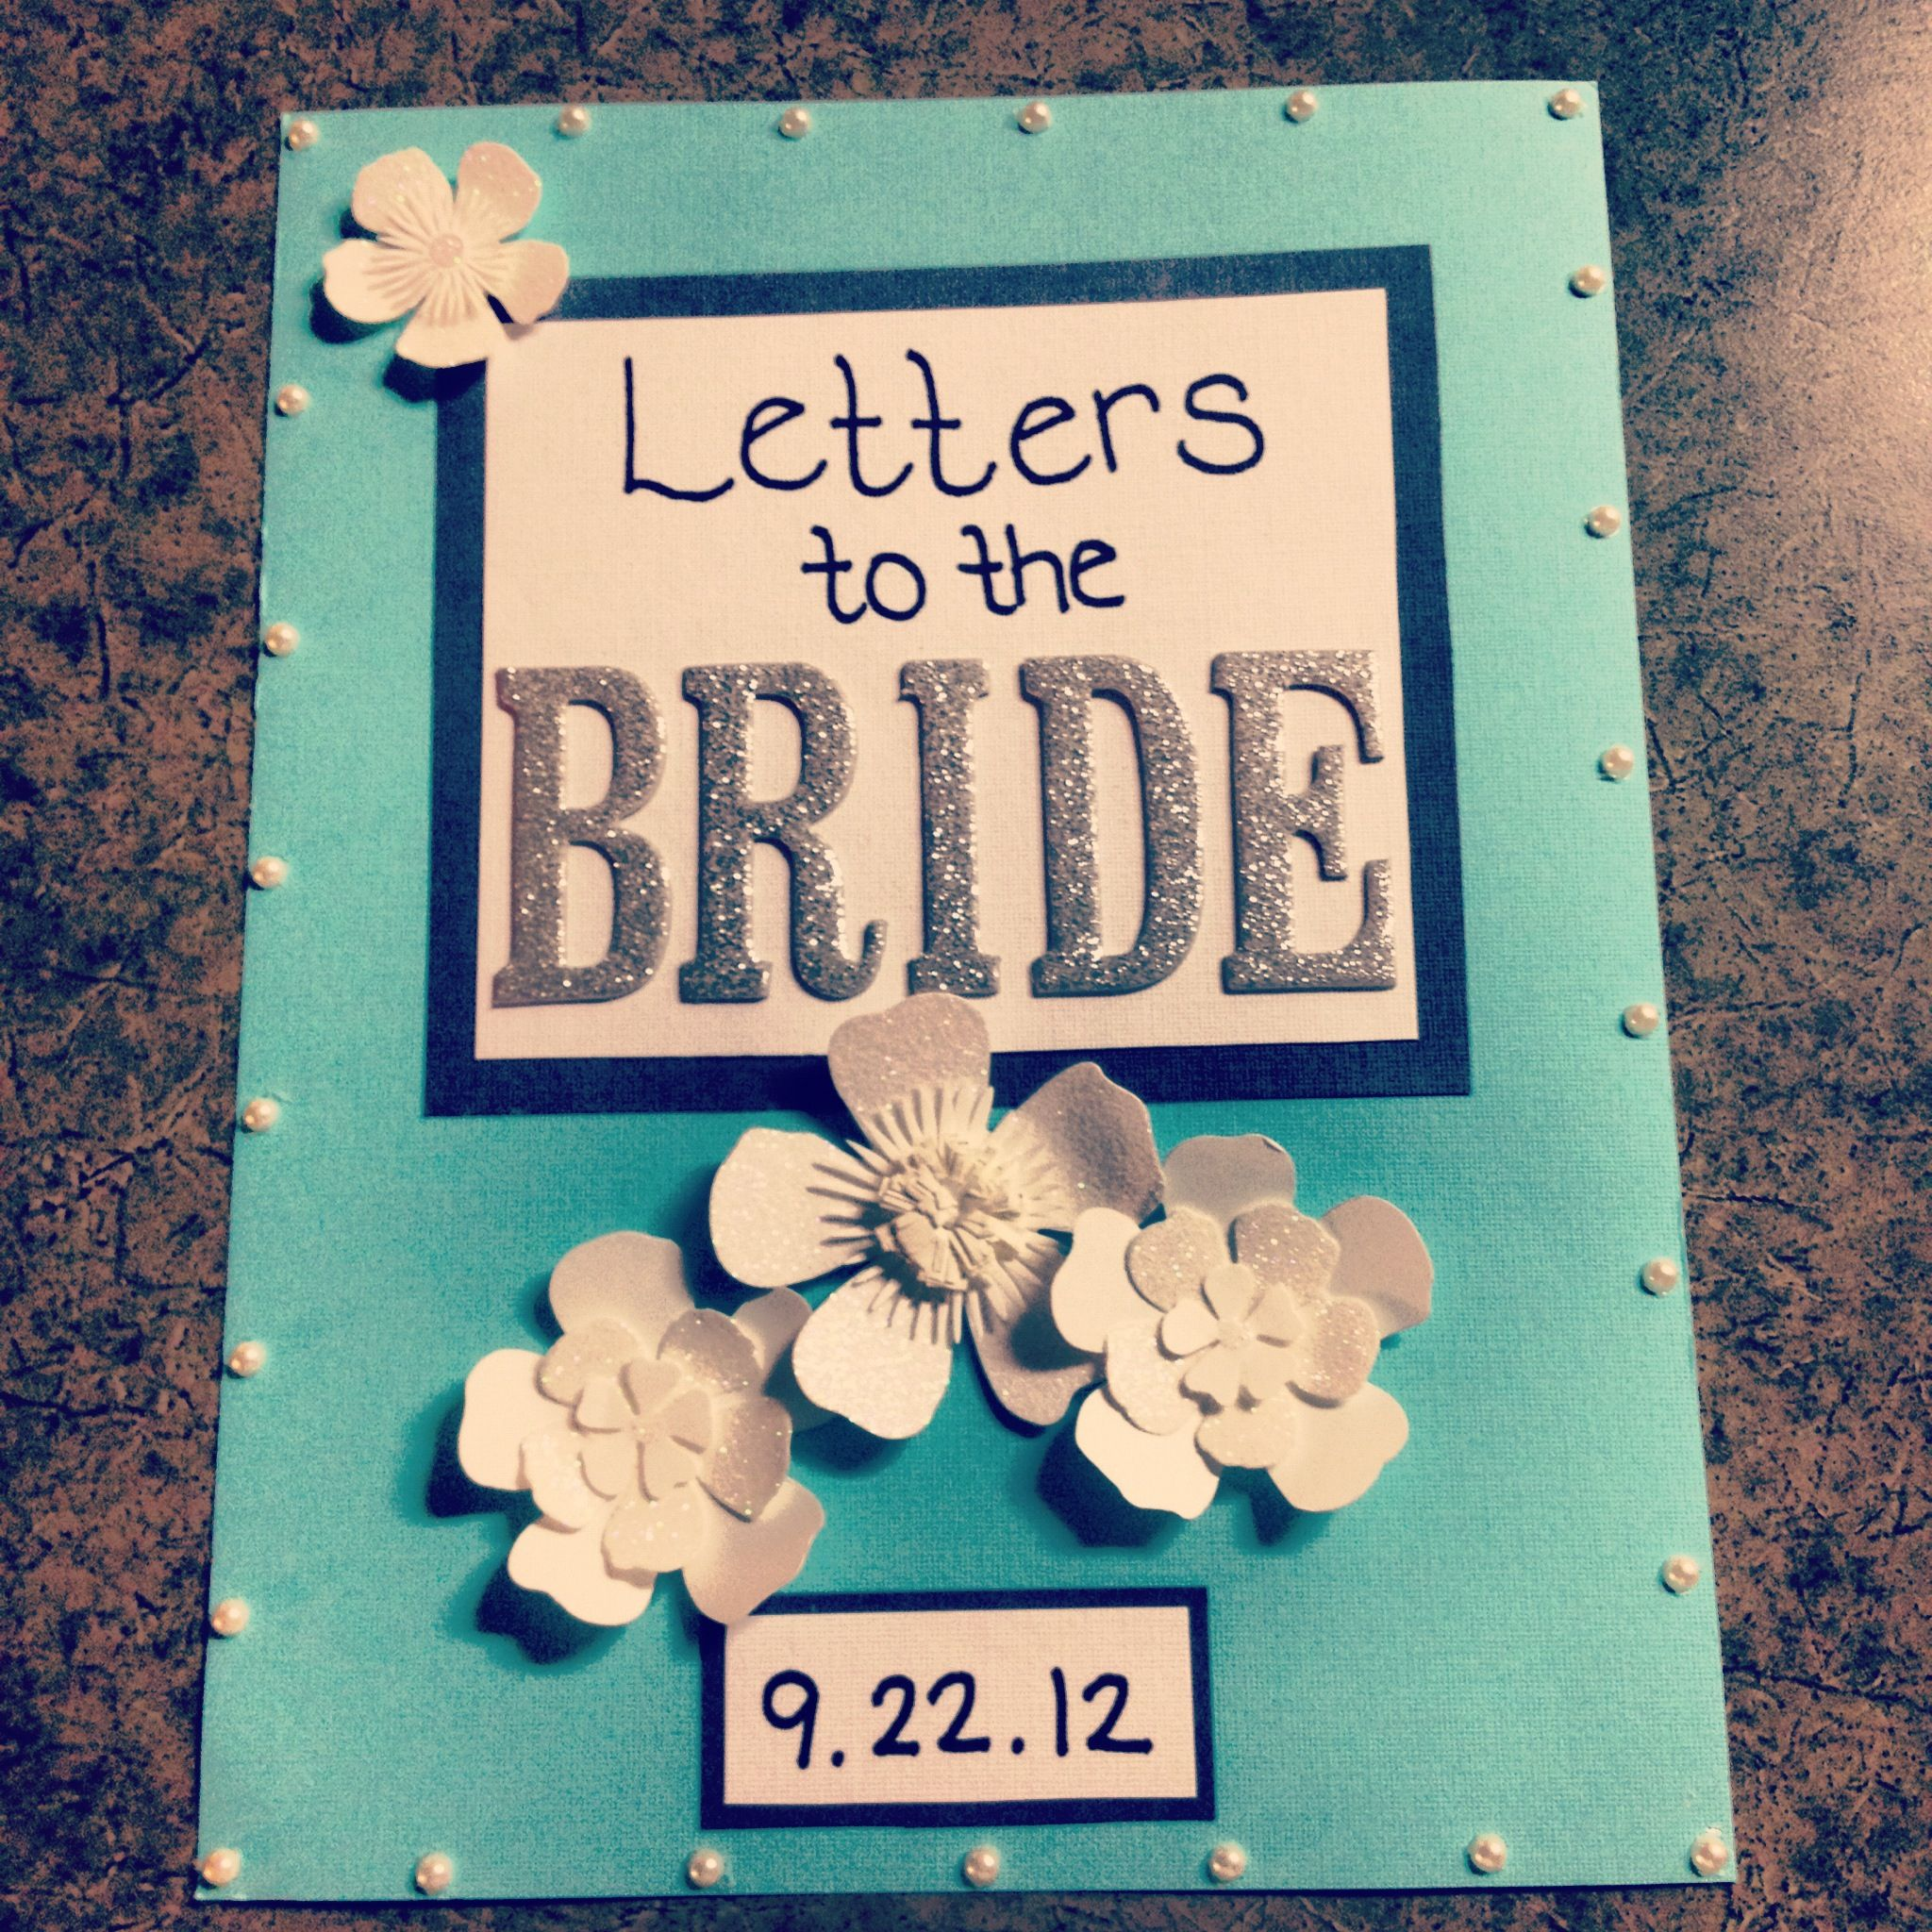 Have each bridesmaid, parents, friends, etc write a letter to the